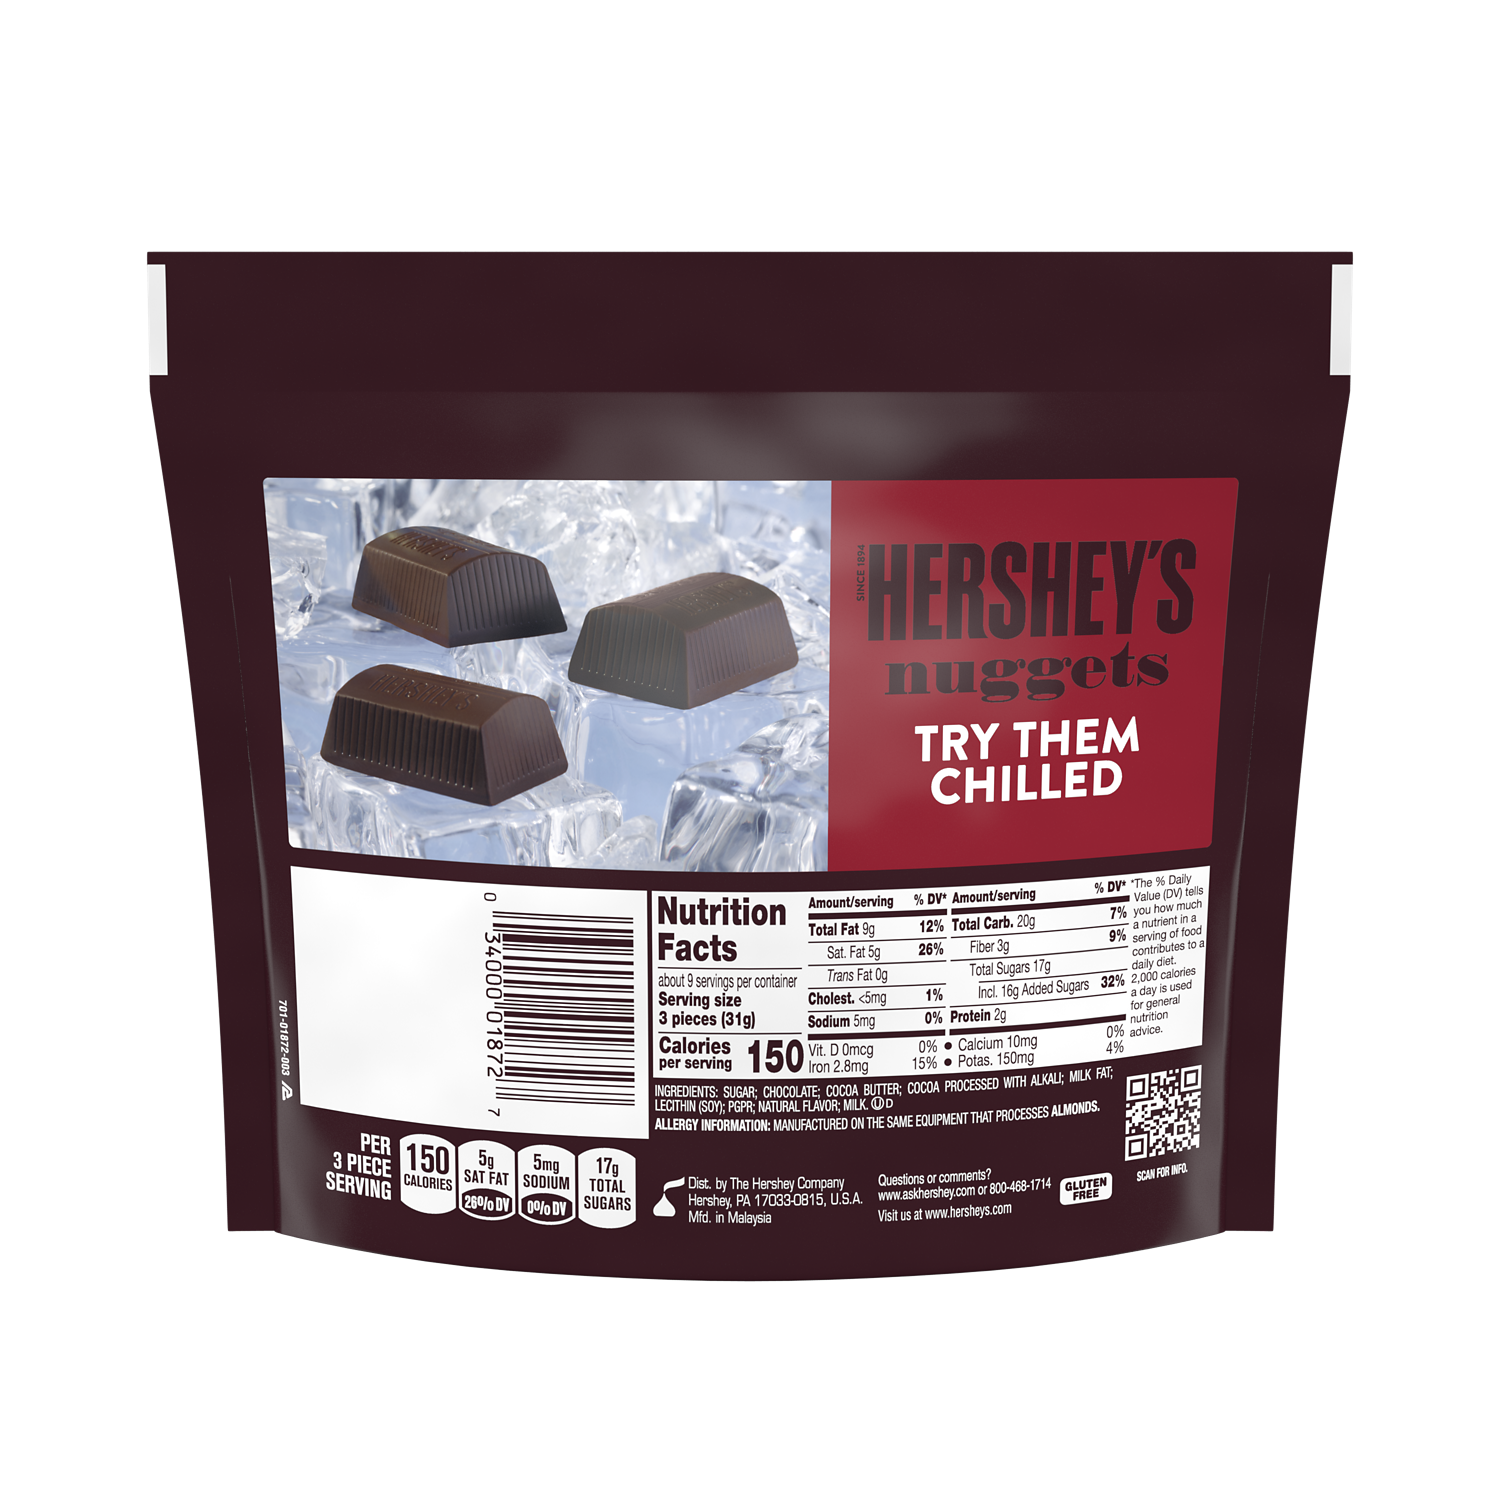 HERSHEY'S NUGGETS SPECIAL DARK Mildly Sweet Chocolate Candy, 10.2 oz pack - Back of Package